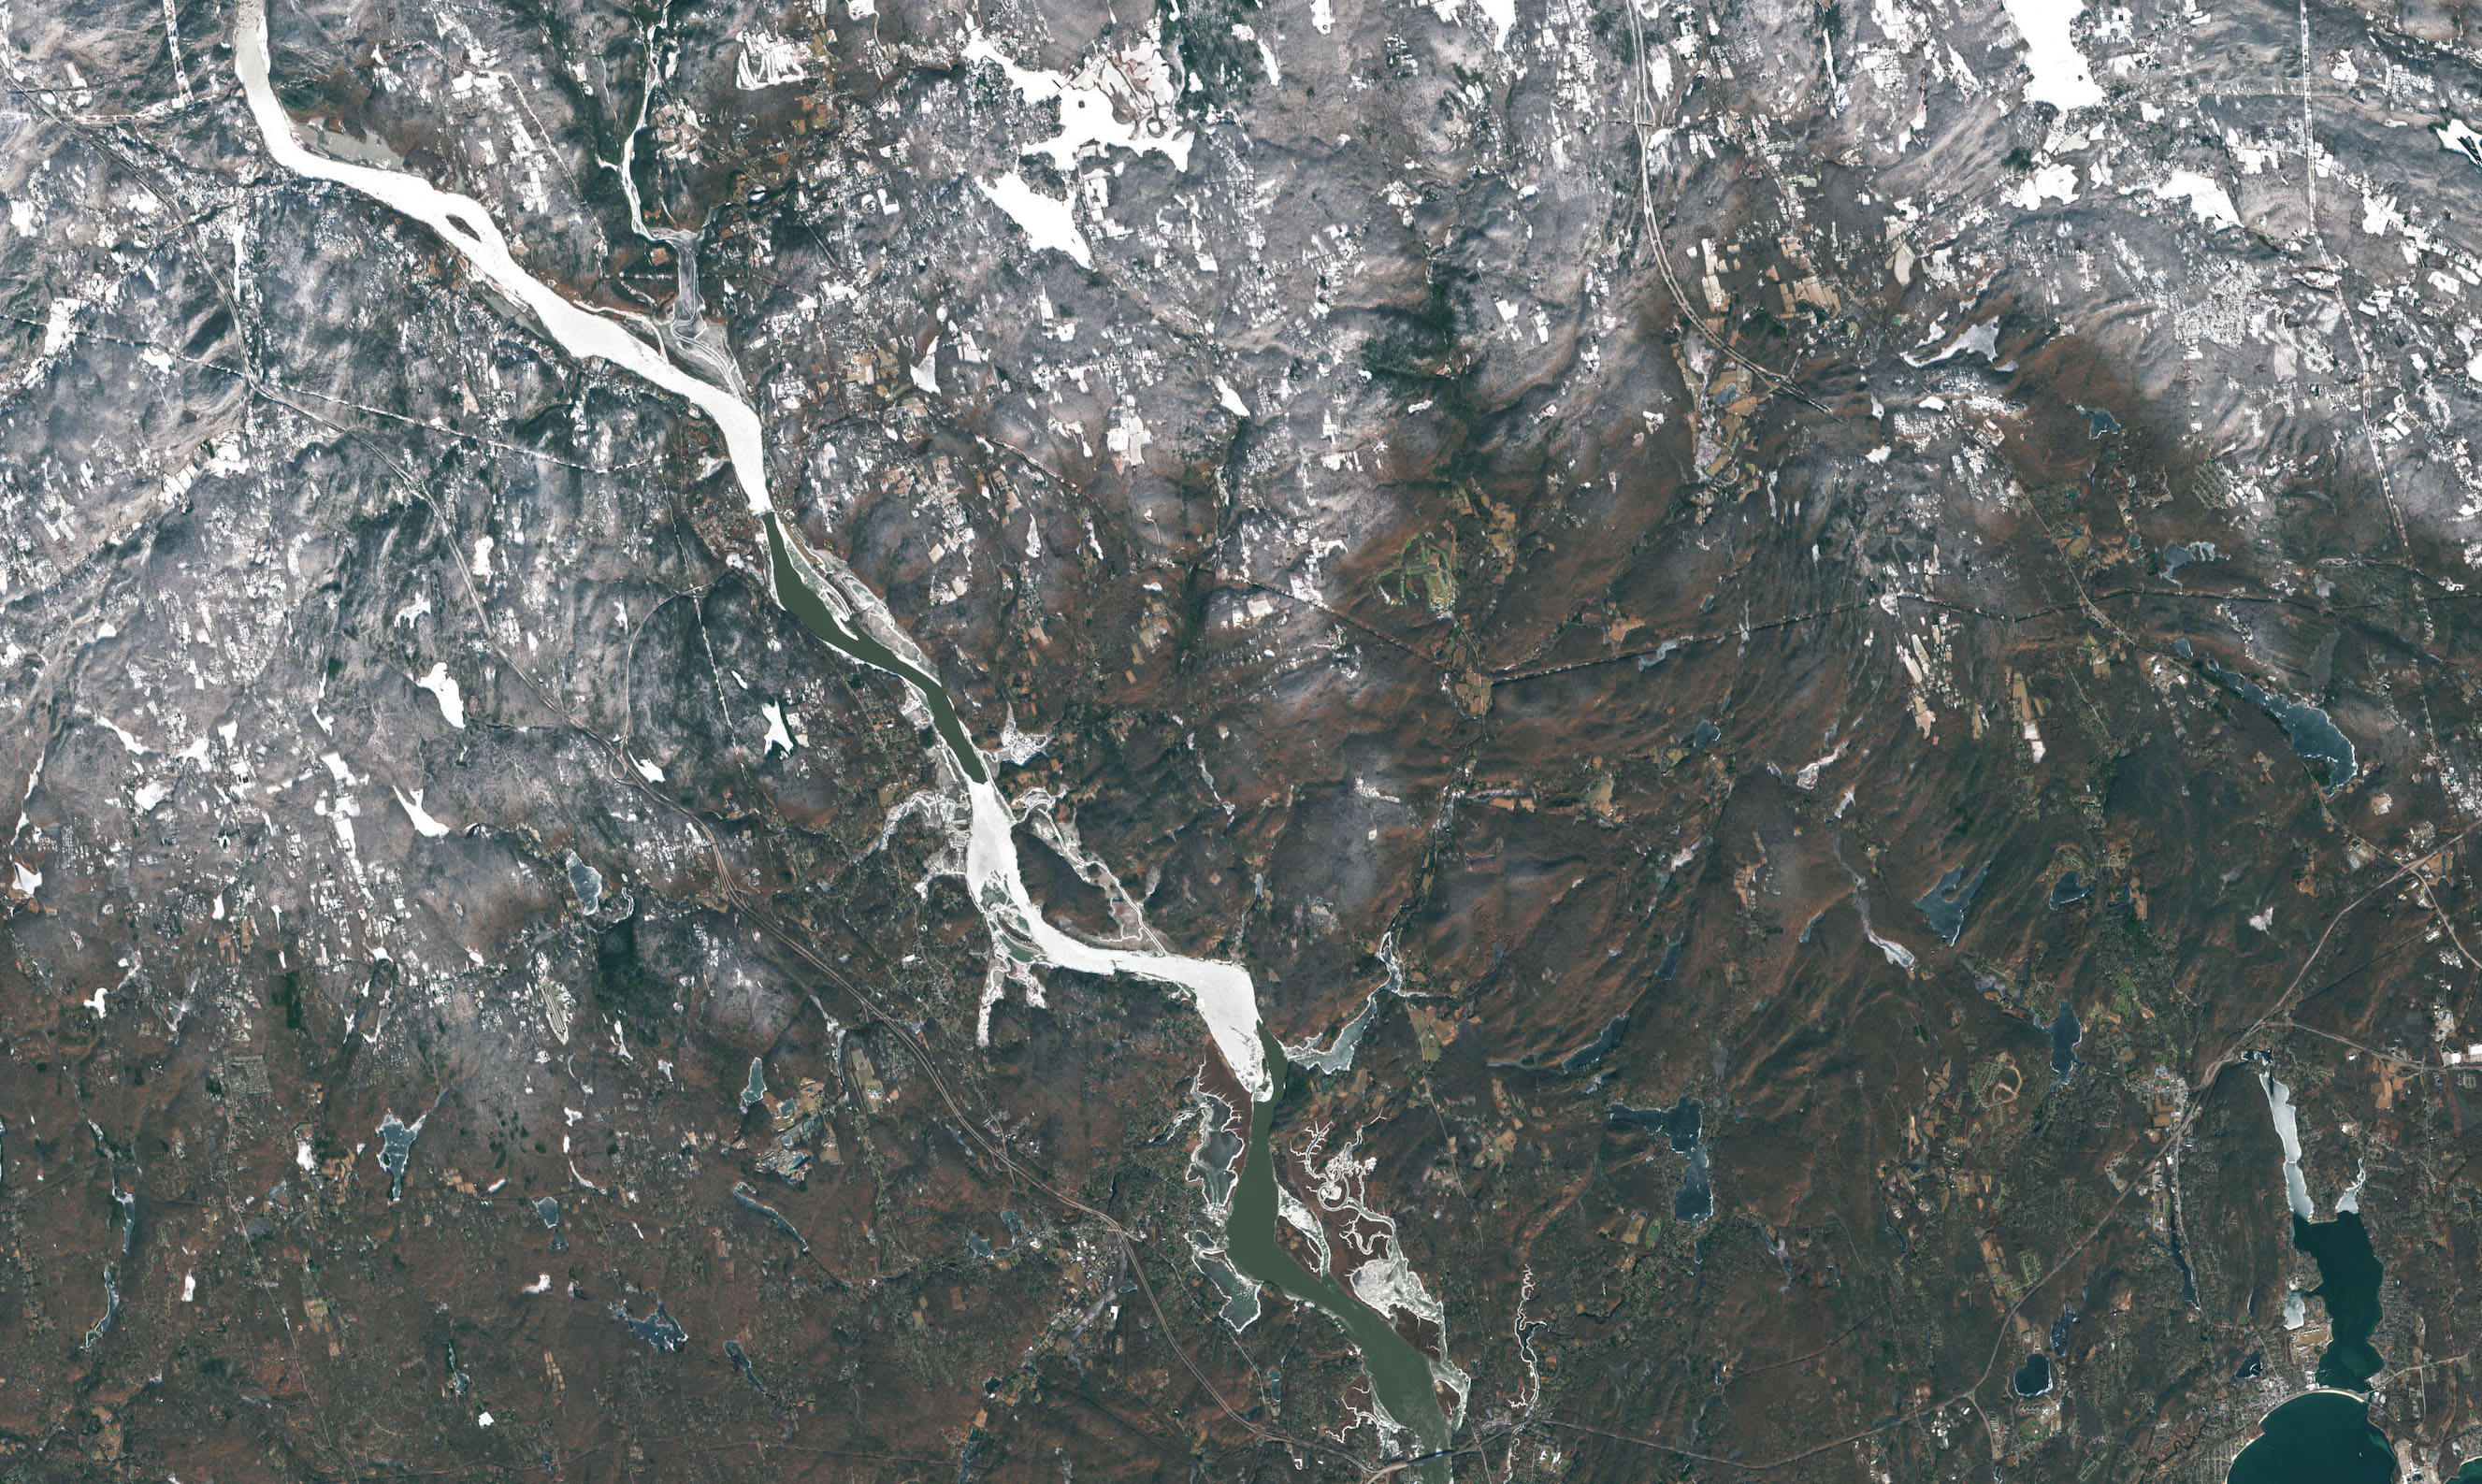 Today's Image of the Day comes from the European Space Agency and features a look at ice jams taking place on the Connecticut River.